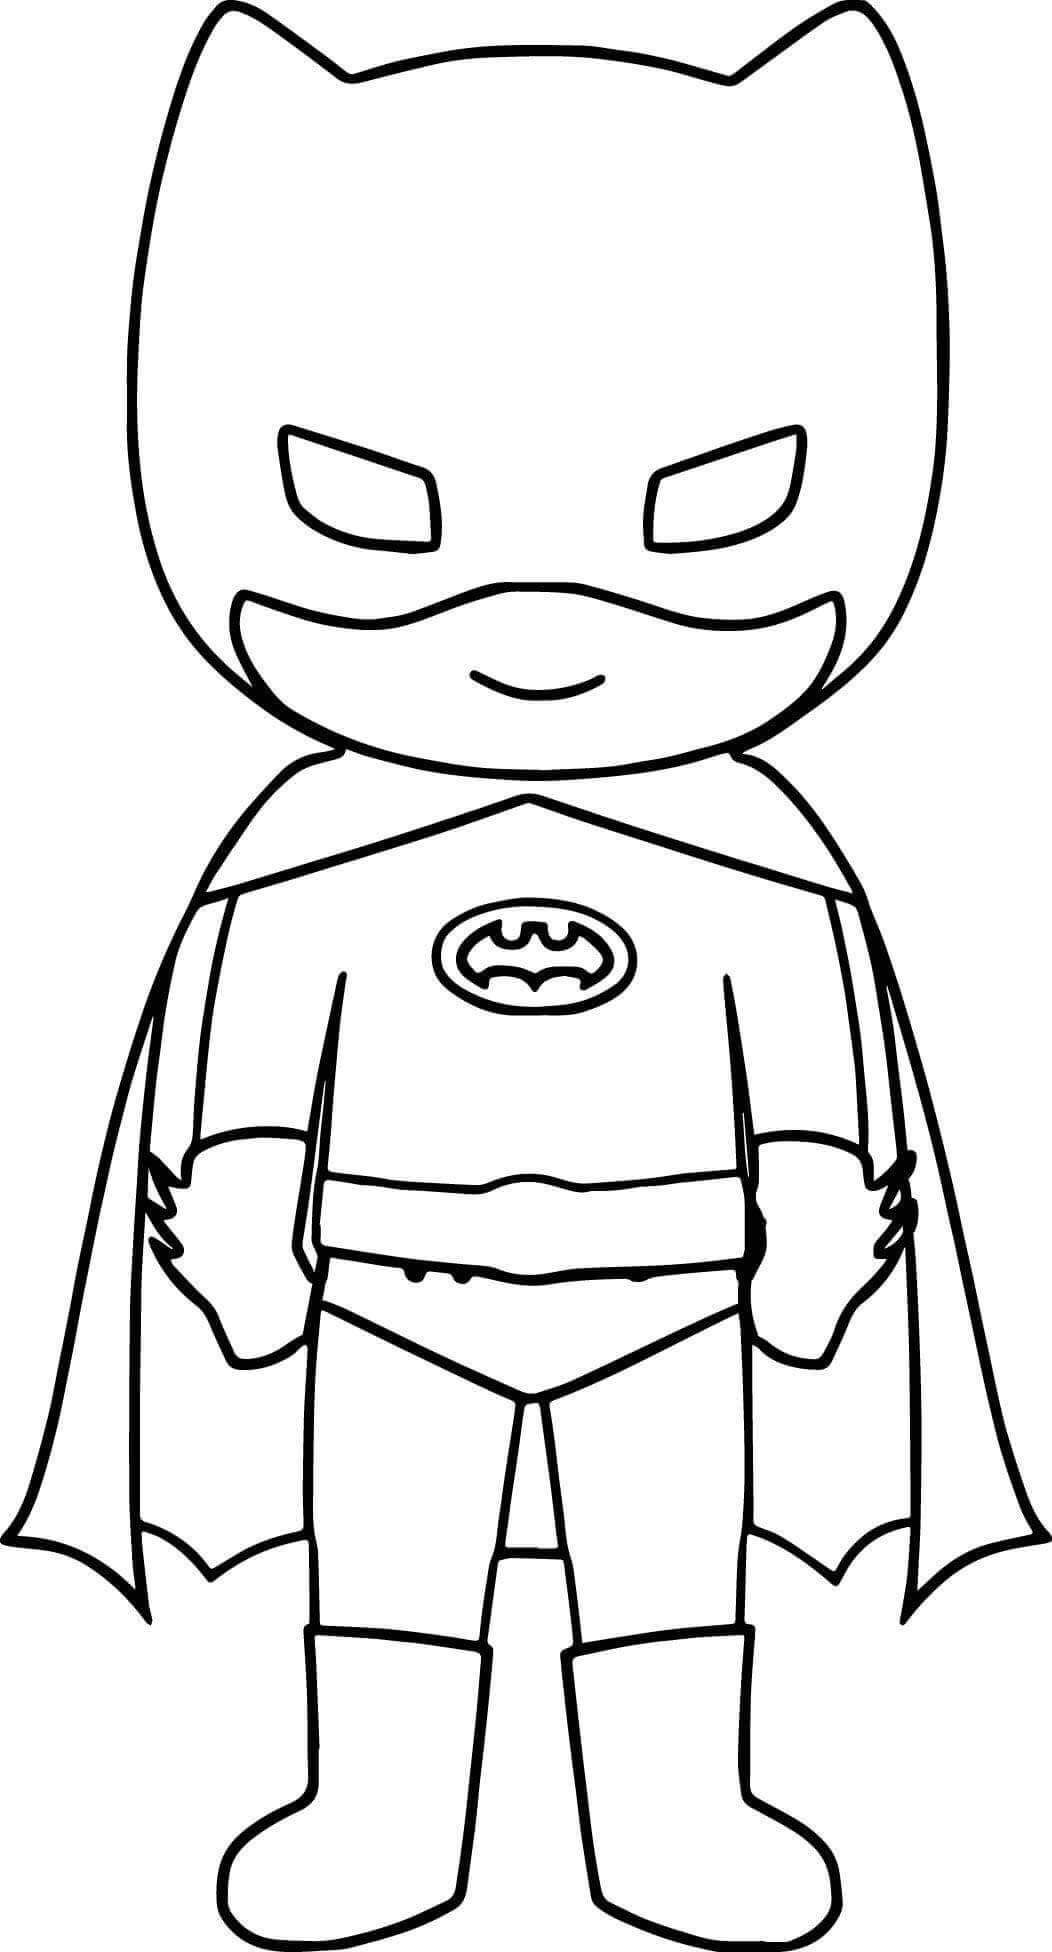 Superhero Batman Coloring Page